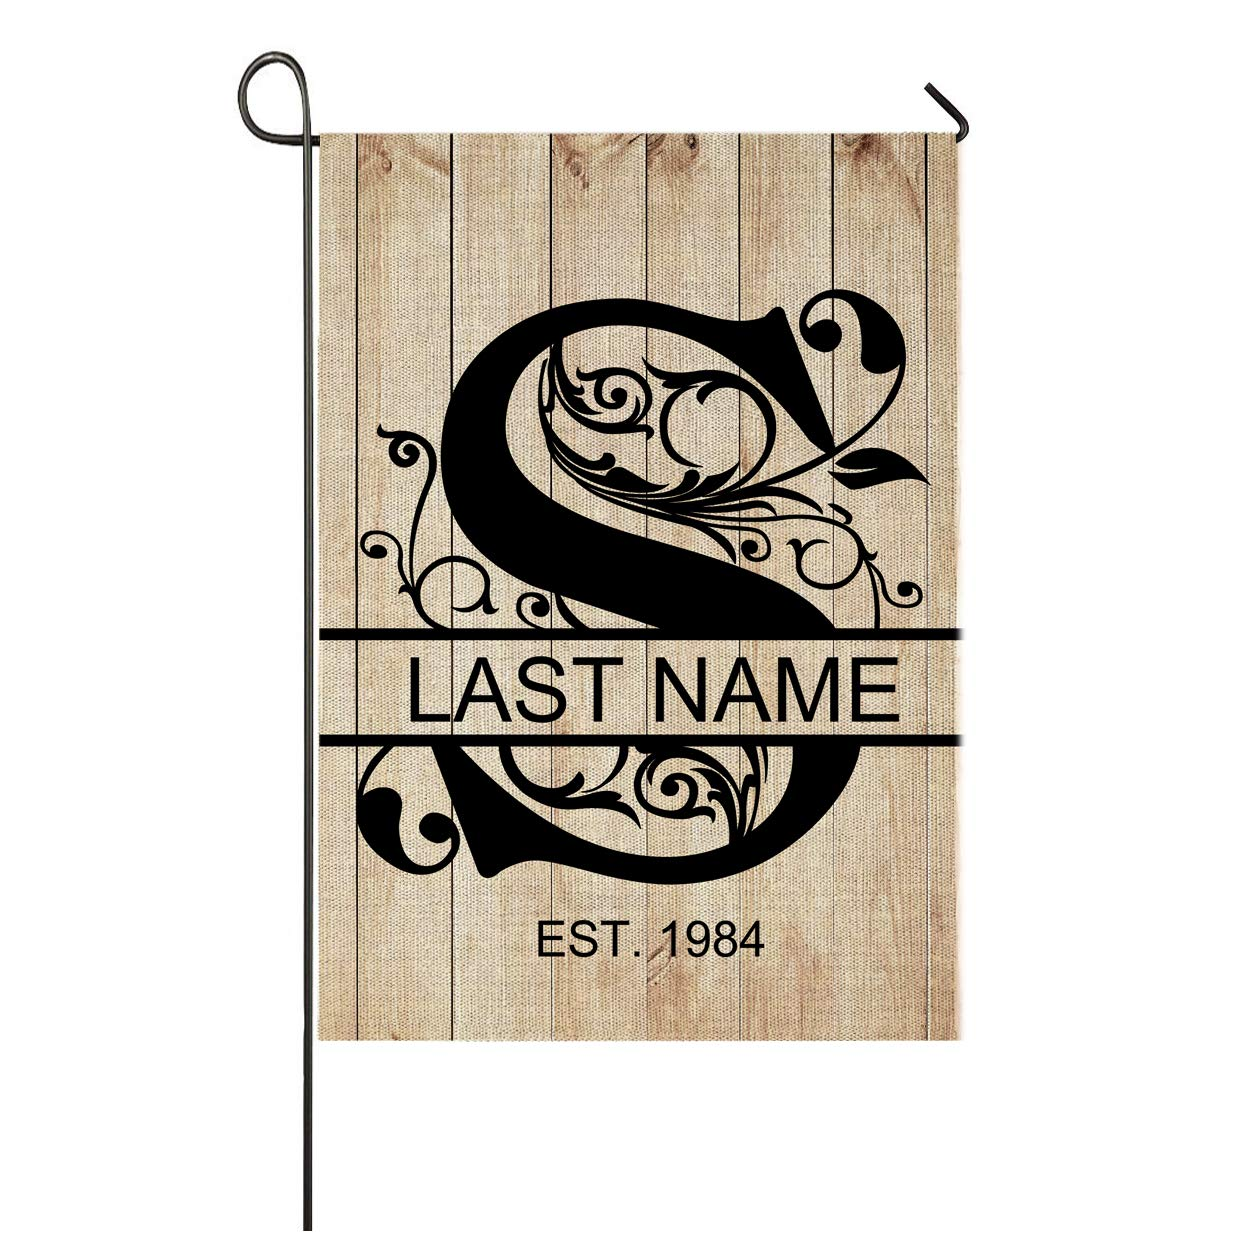 Personalized S Split Monogram Garden Flag Wood Background Vertical Double Sided Custom Last Name Burlap Garden Yard Banner Lawn Outdoor Decoration 12.5 x 18 Inch